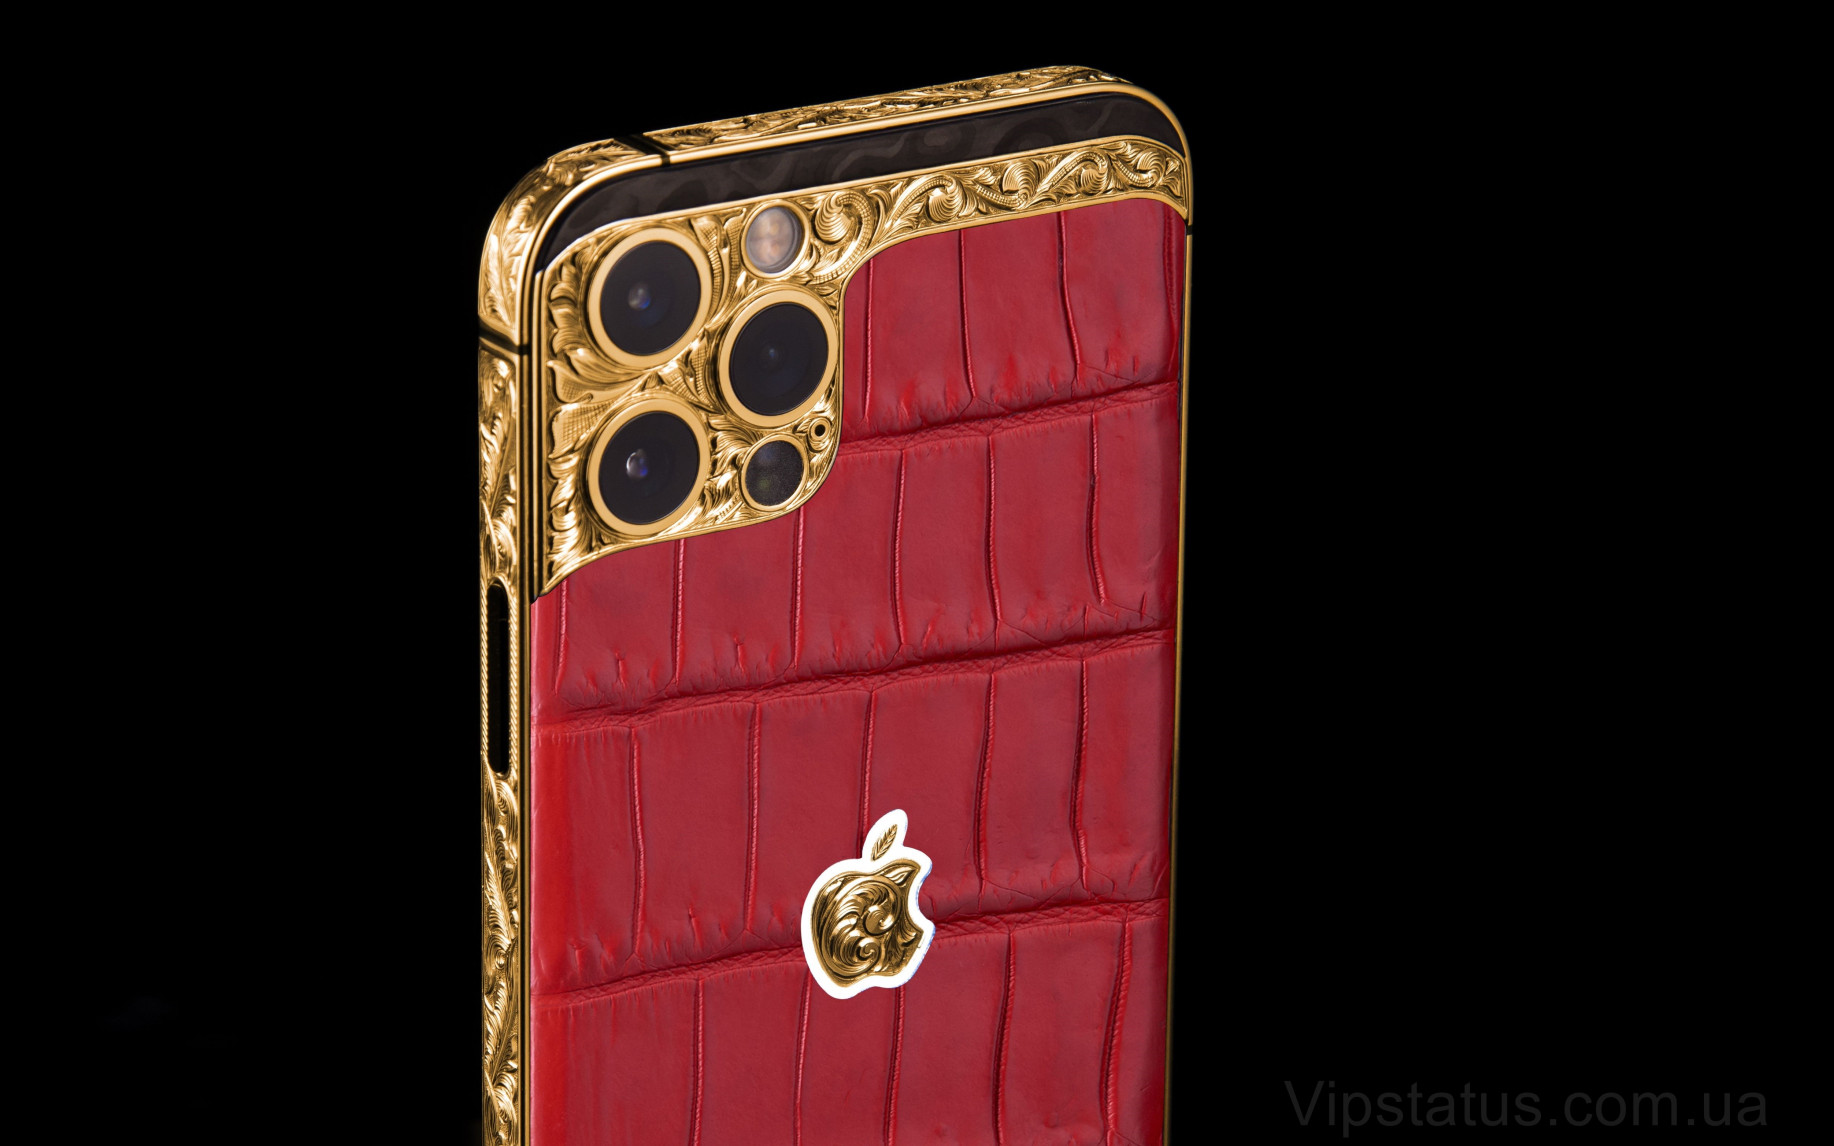 Elite Red Queen Edition IPHONE 12 PRO MAX 512 GB Red Queen Edition IPHONE 12 PRO MAX 512 GB image 2